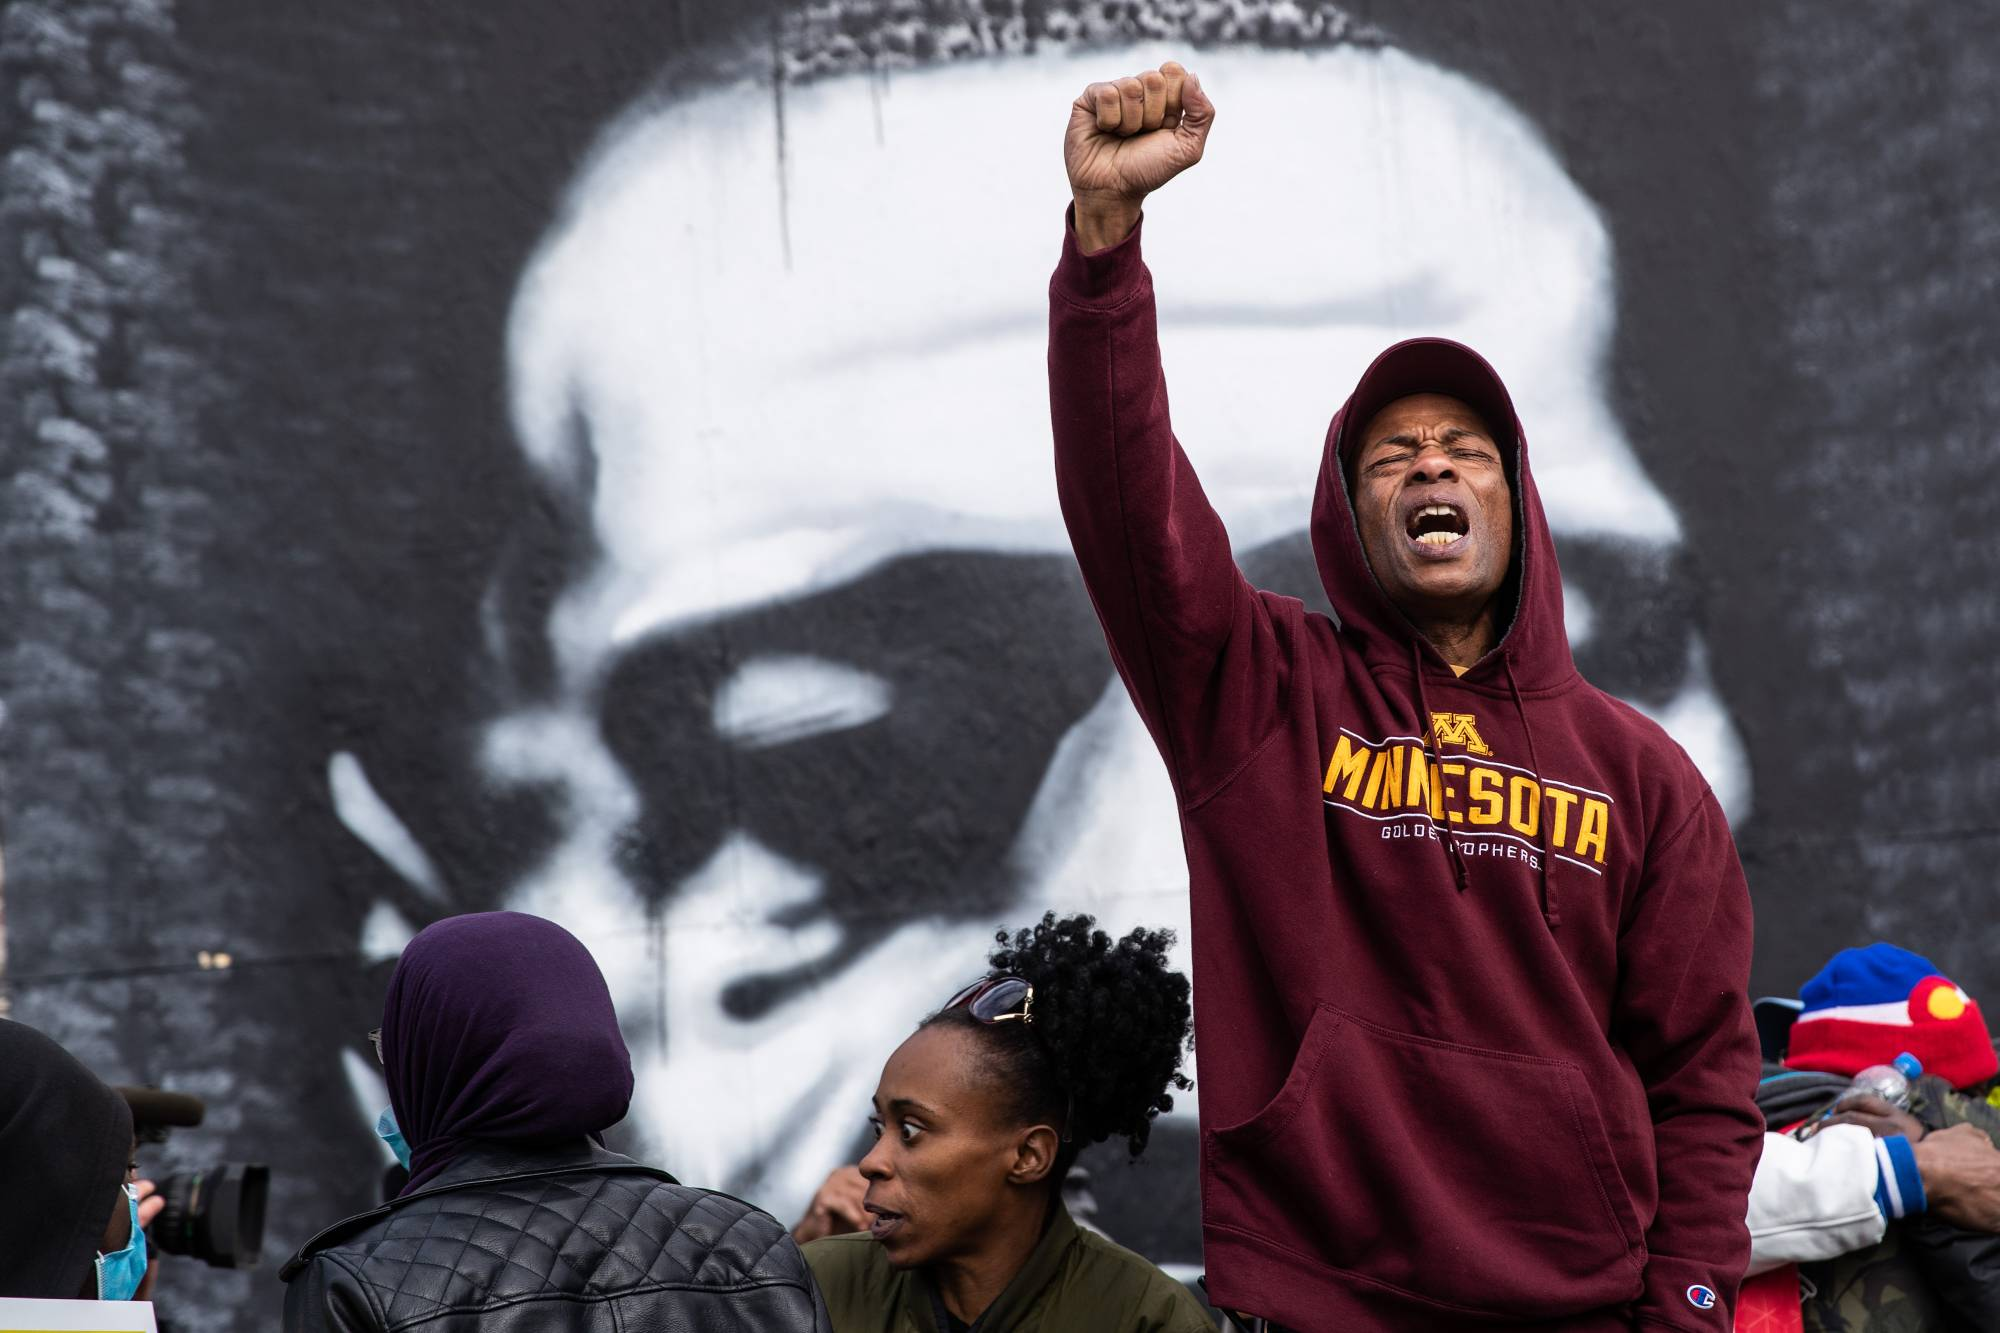 Leon Lyons, 60, celebrates the guilty verdict in the trial of Derek Chauvin for the murder of George Floyd, at George Floyd Square in Minneapolis on Tuesday.    VICTOR J. BLUE/THE NEW YORK TIMES